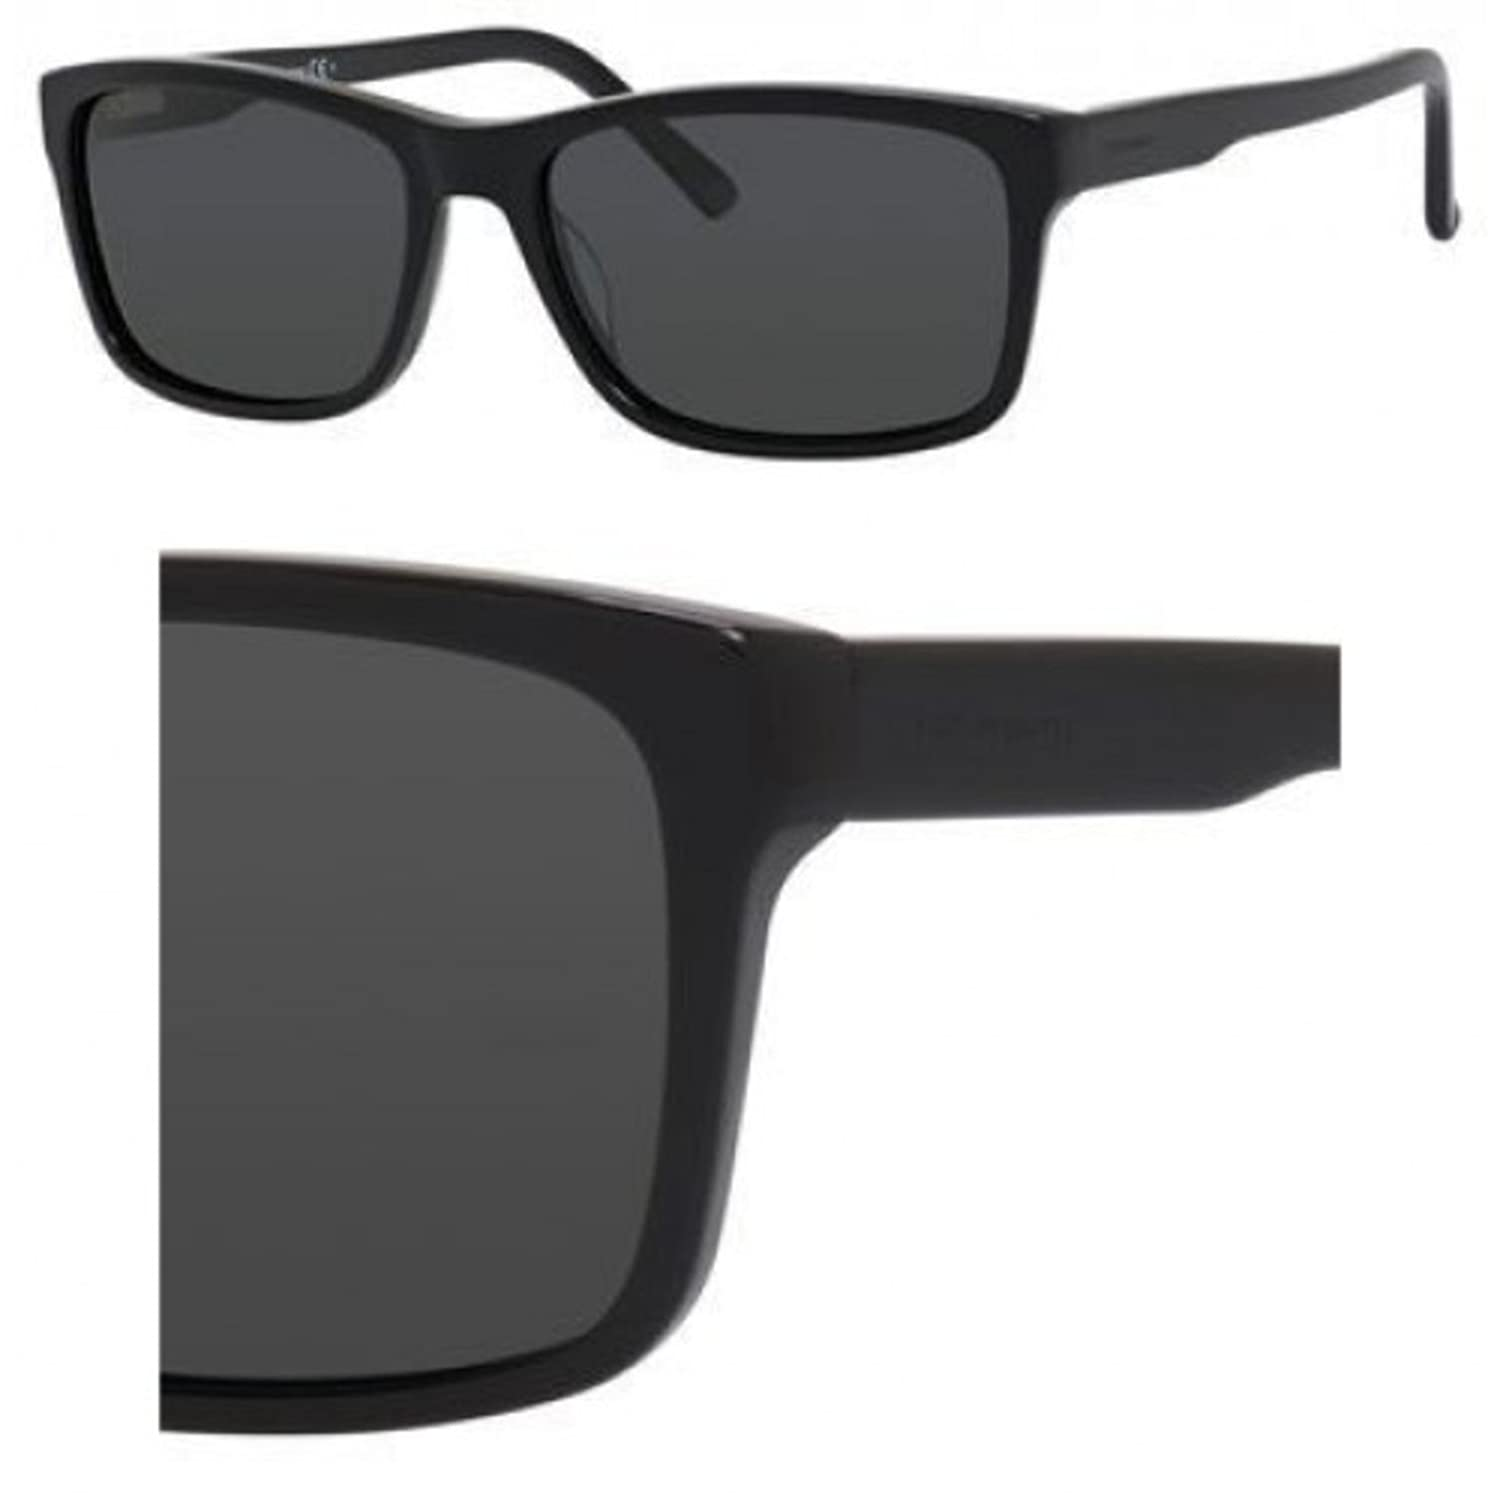 f2539597f11 Sunglasses Chesterfield 3  S 0807 Bkack   RA gray polarized lens   Amazon.co.uk  Clothing